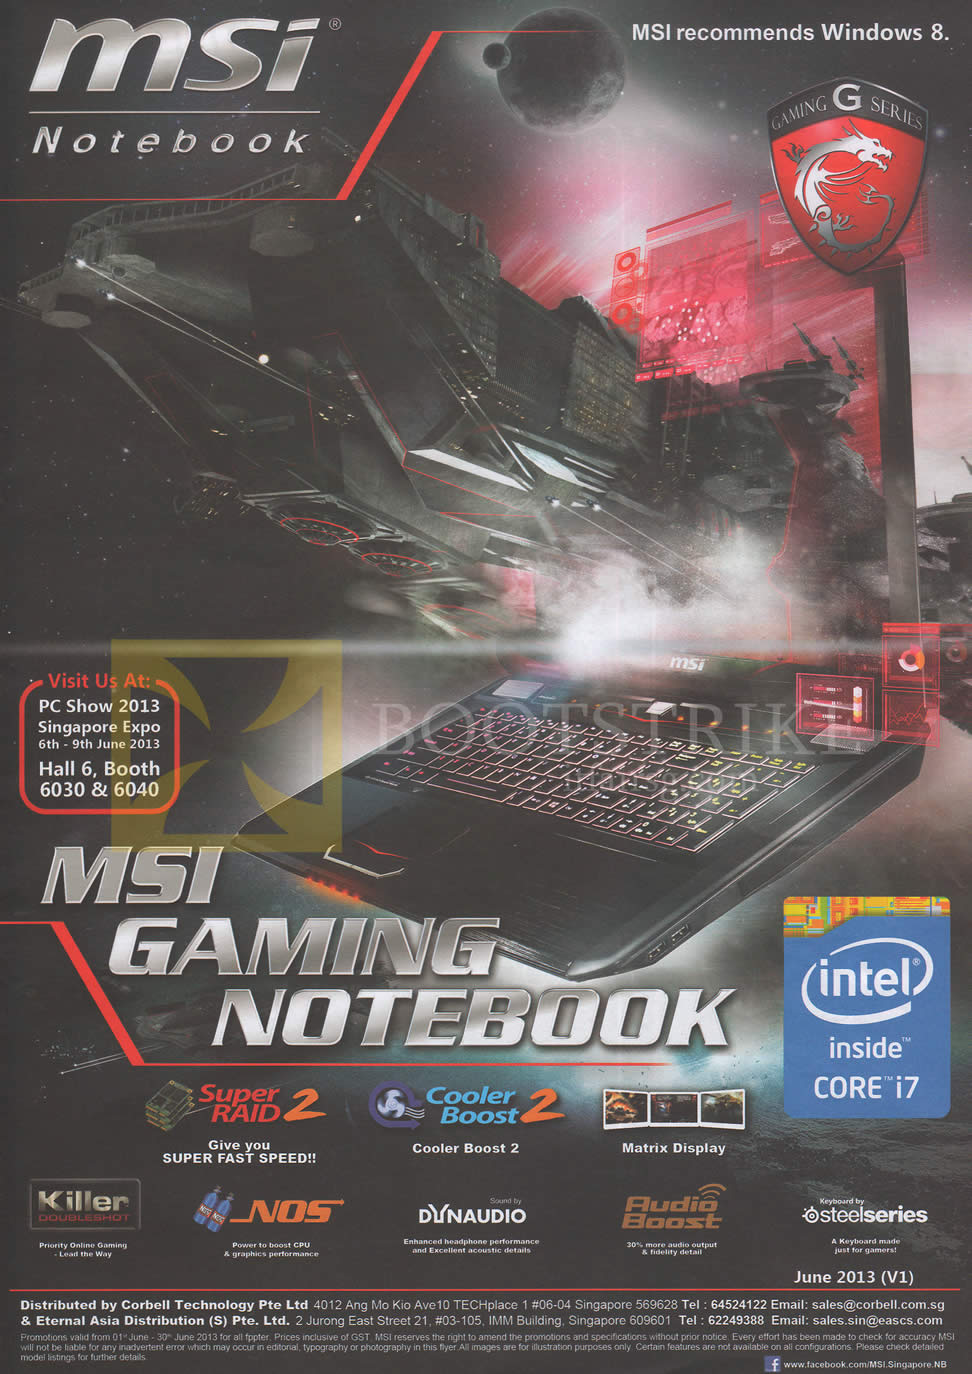 PC SHOW 2013 price list image brochure of MSI Gaming Notebook Overview, Features